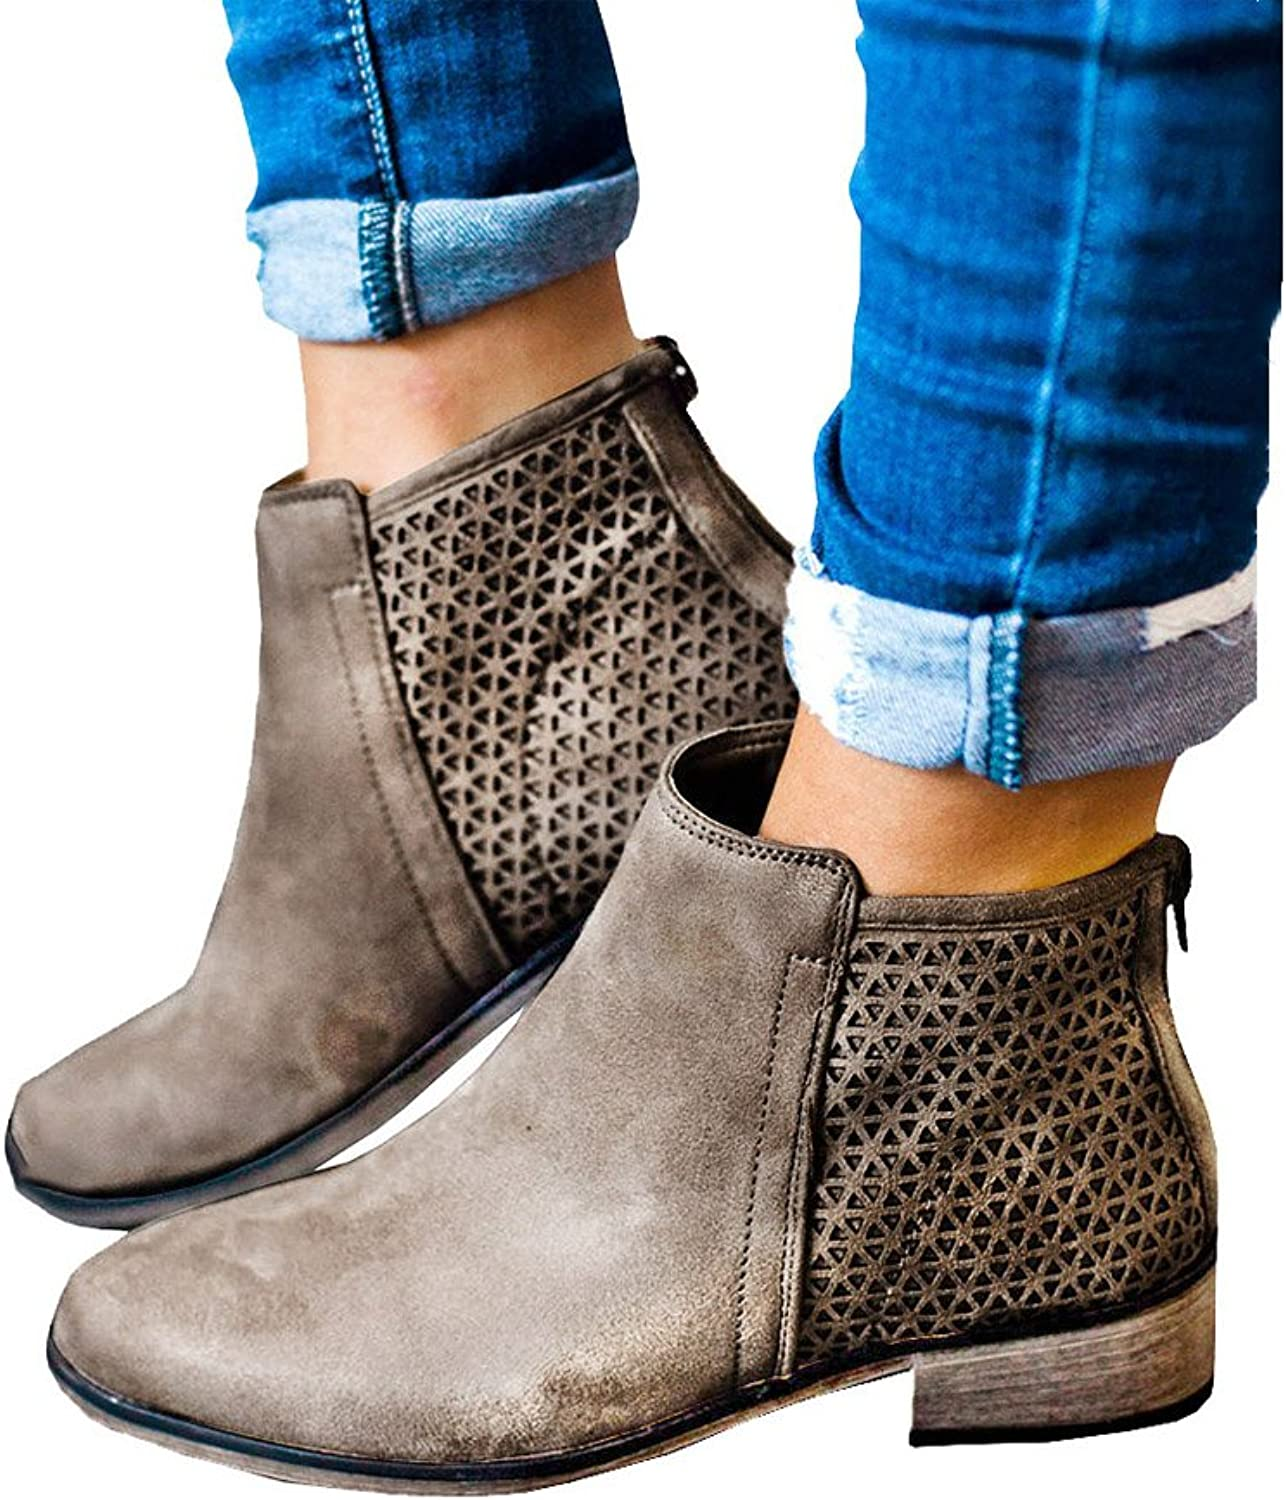 Fashare Womens Fall Ankle Boots Low Stacked Heel Booties Hollow Out Back Zipper Western shoes